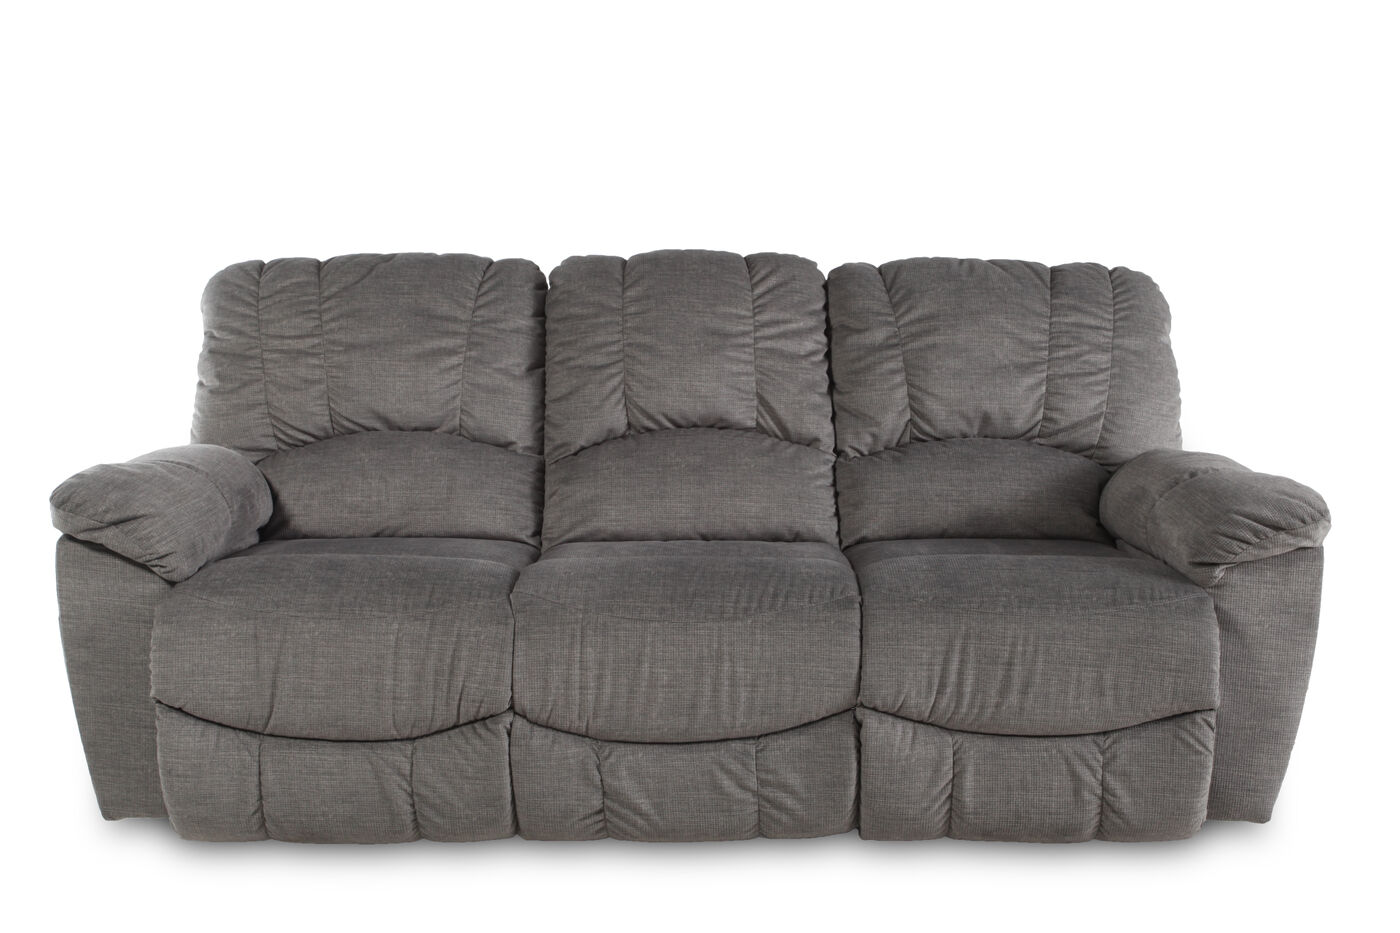 Lazy Boy Dual Reclining Sofa Reese La Z Time Full Reclining Sofa Thesofa